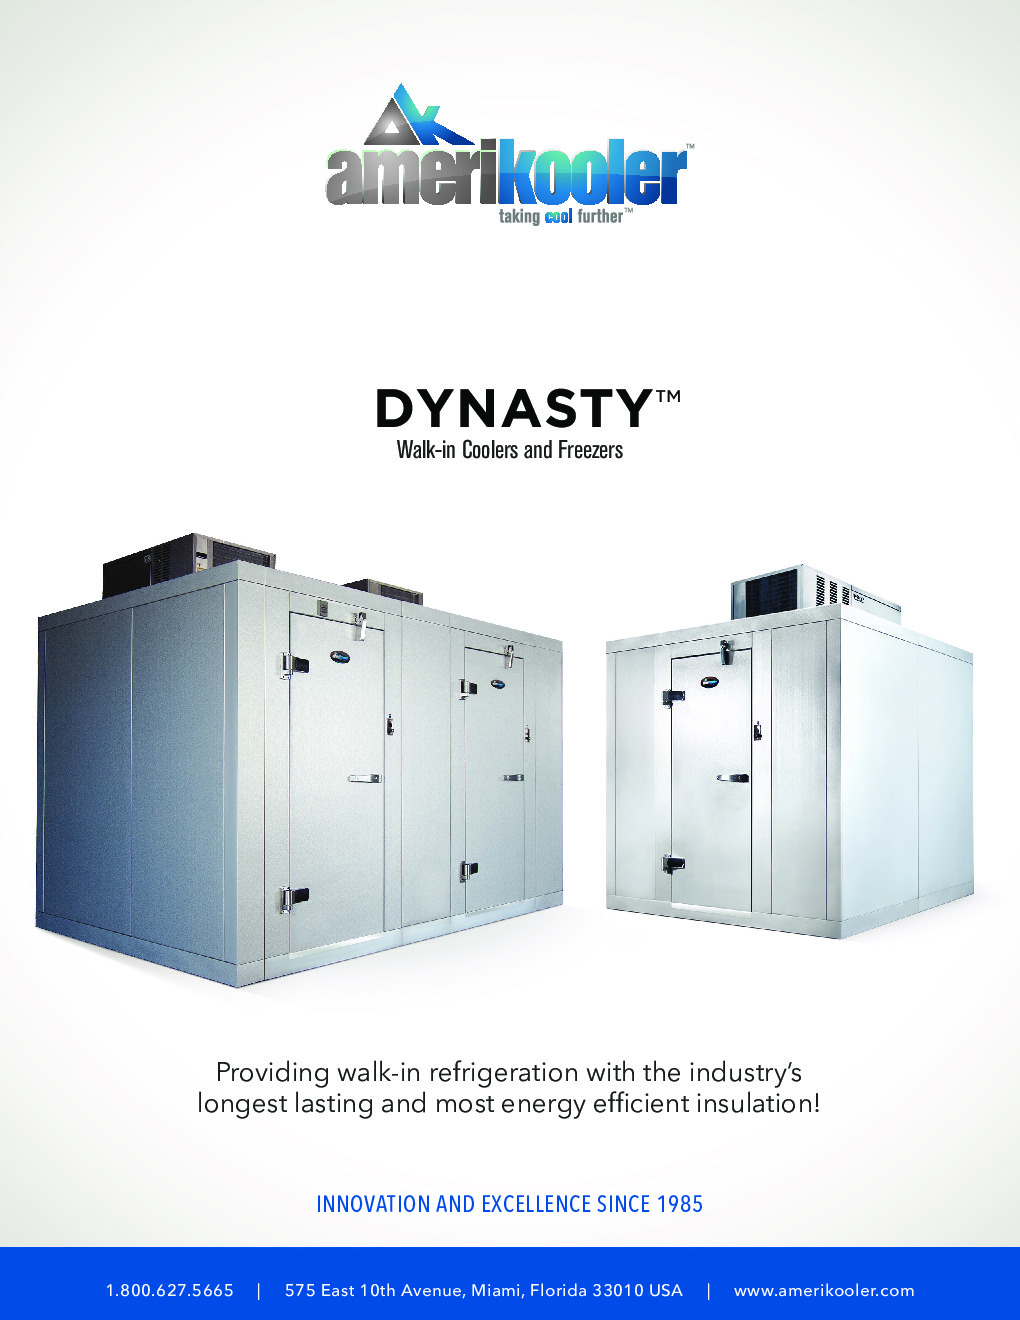 AmeriKooler DW090977F-4/5-SC 9' X 9' Walk-In Cooler, 5' L Cooler with Floor and 4' L Freezer, Self Contained